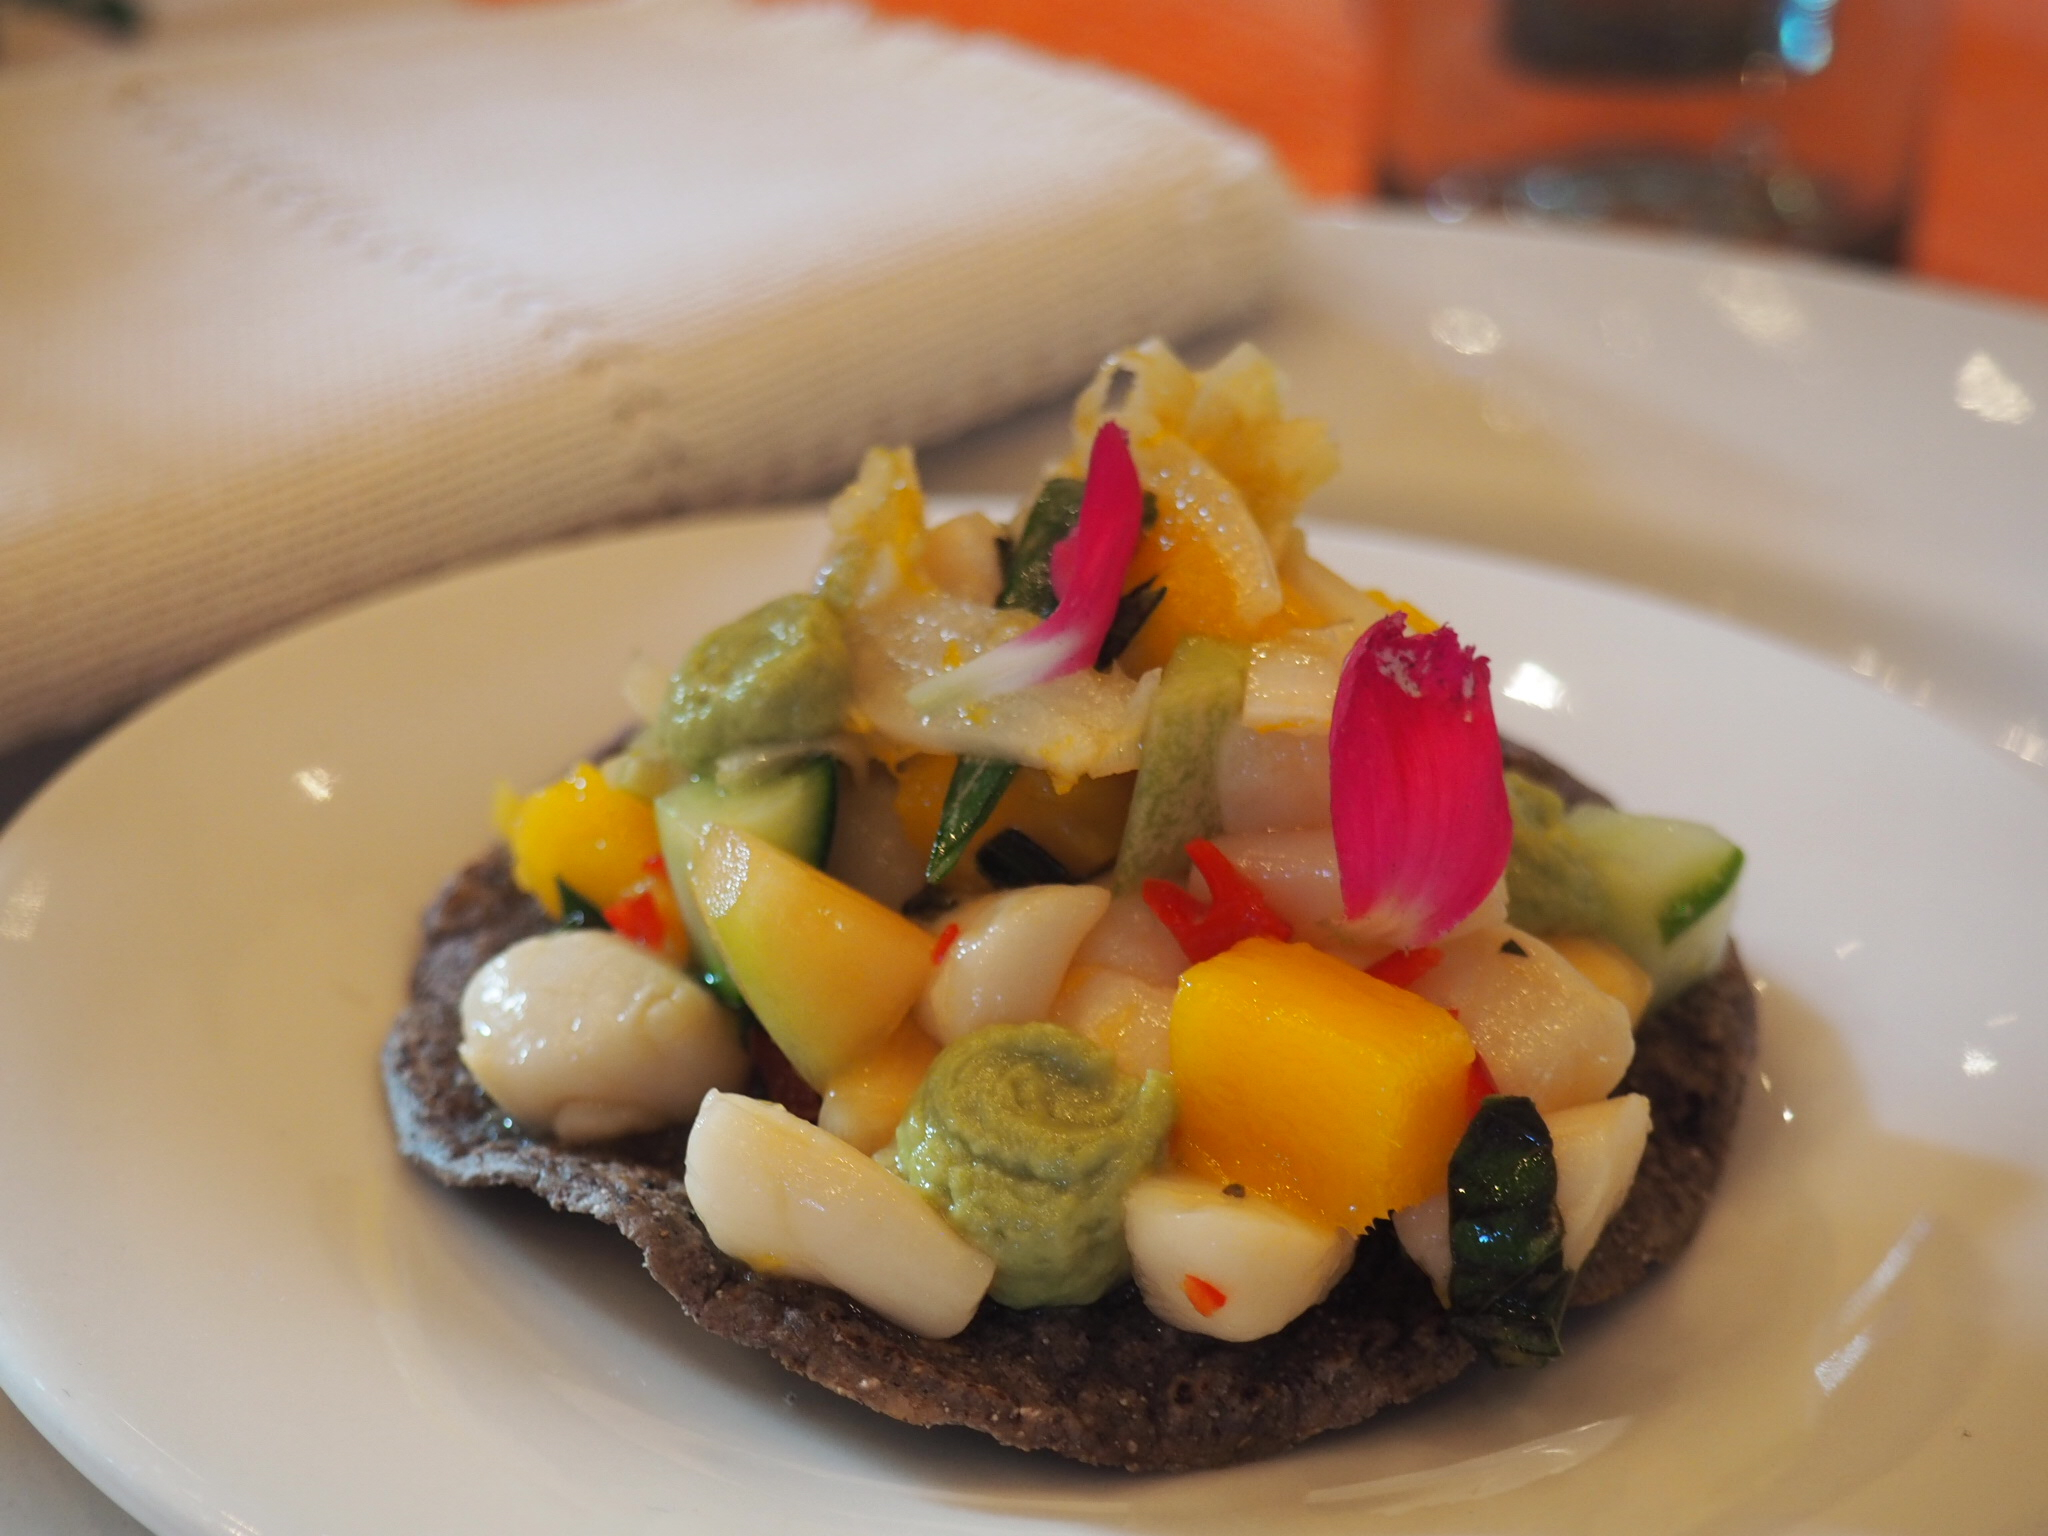 Callo de hacho tostada. Photo by Jackie Bryant.